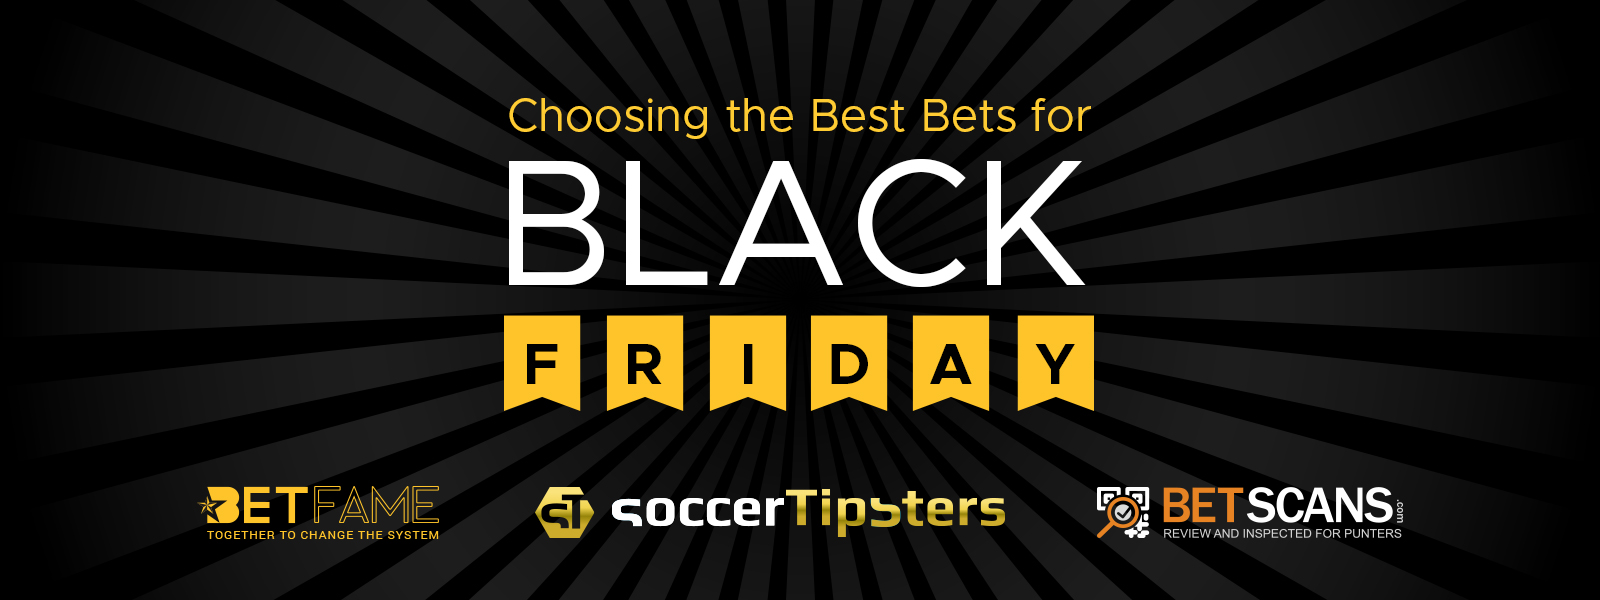 Choosing the Best Soccer Betting Bets for Black Friday